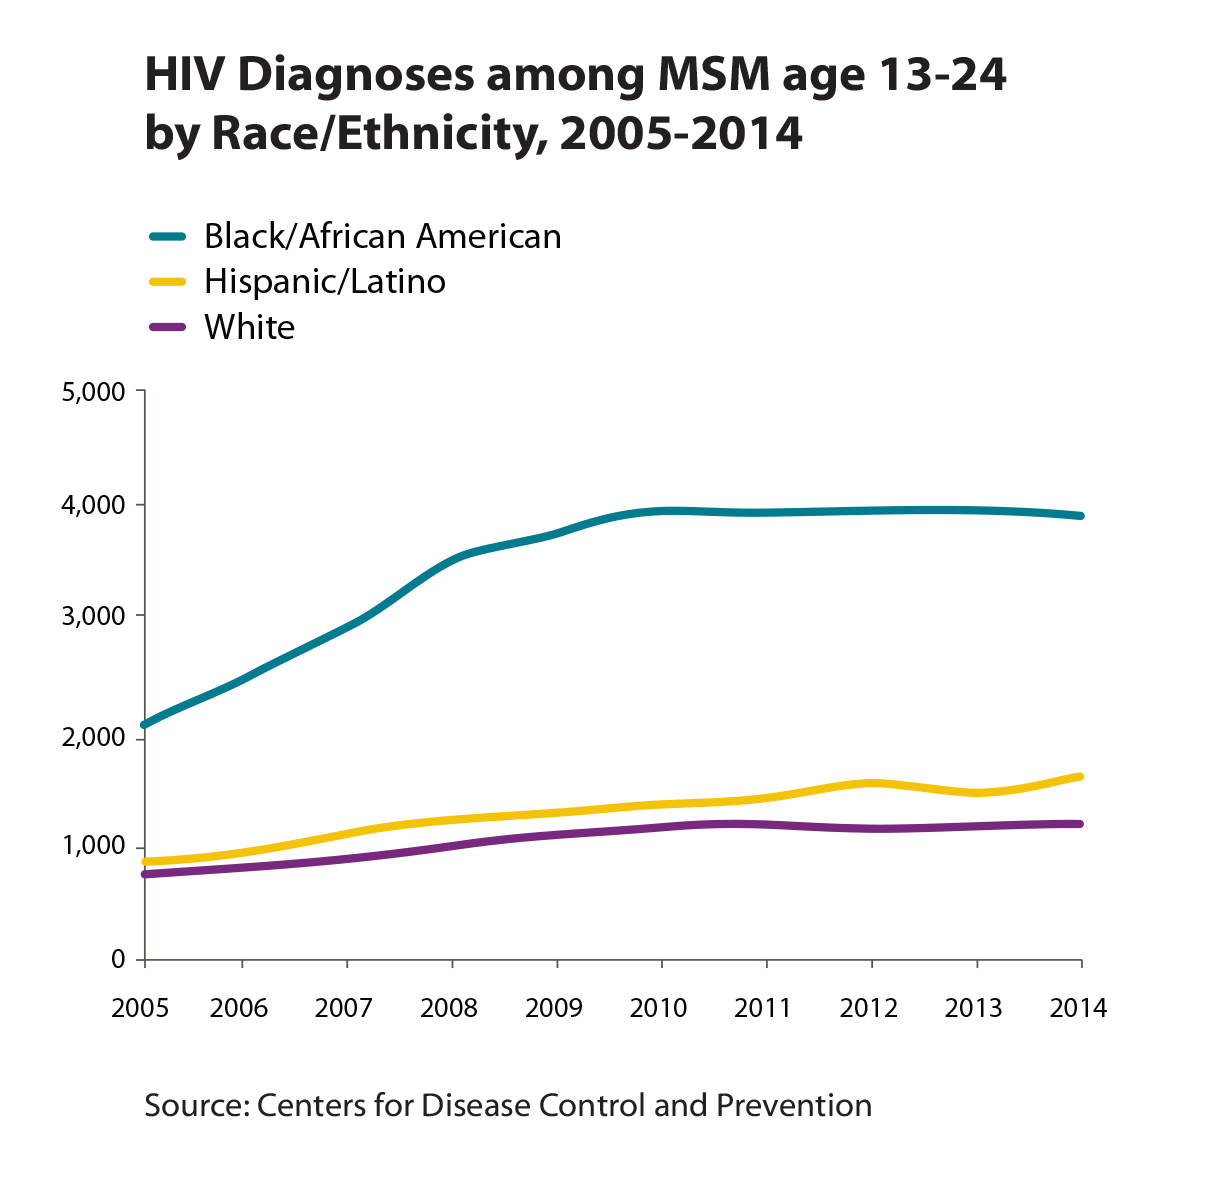 hiv aids among young african americans African american hiv/aids  hiv diagnoses among young african american gay and bisexual men aged 13 to 24 remained stable hiv diagnoses among african american gay .